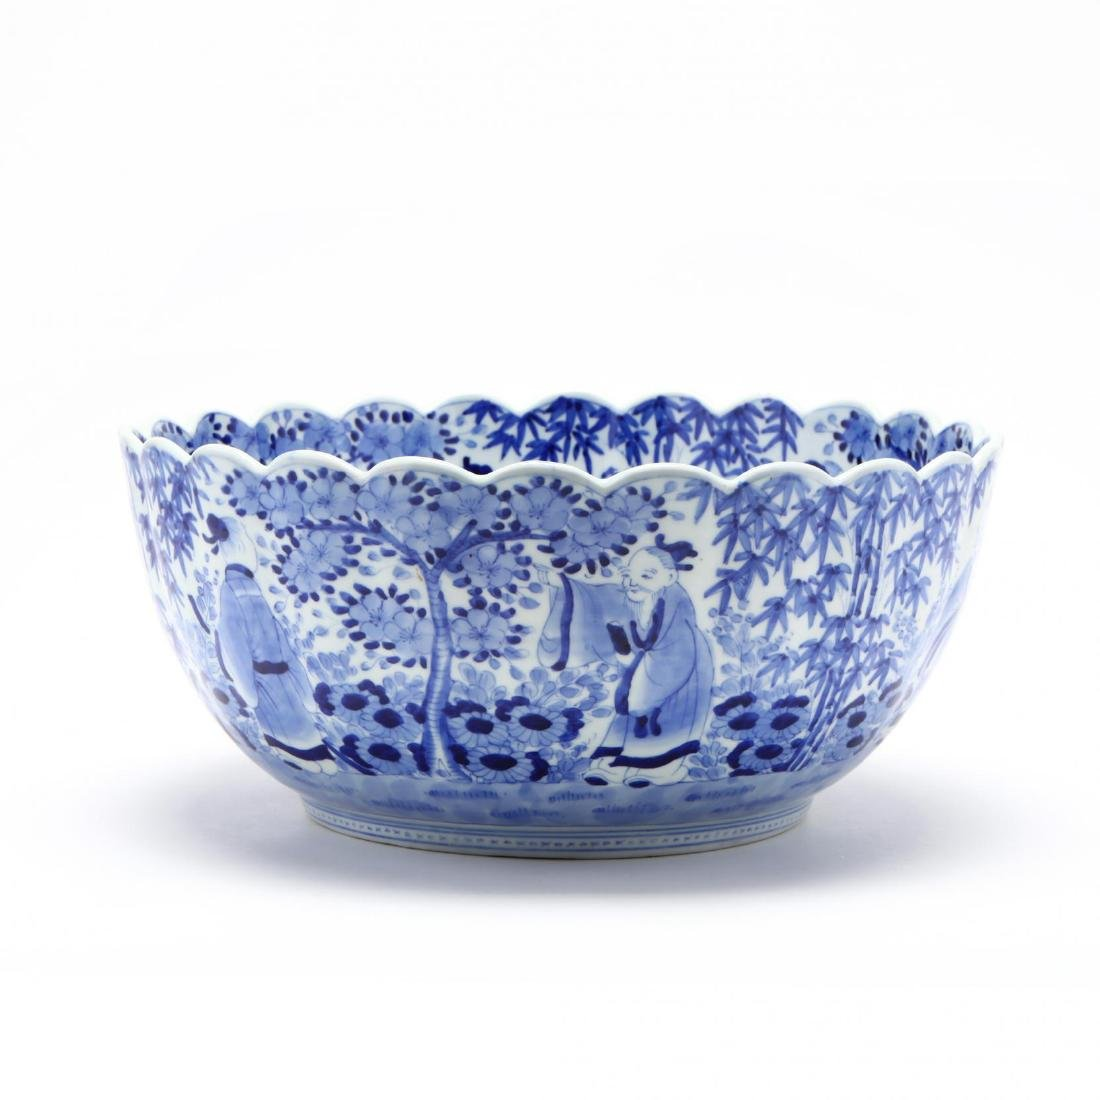 A Blue and White Punch Bowl with Scalloped Rim - 6